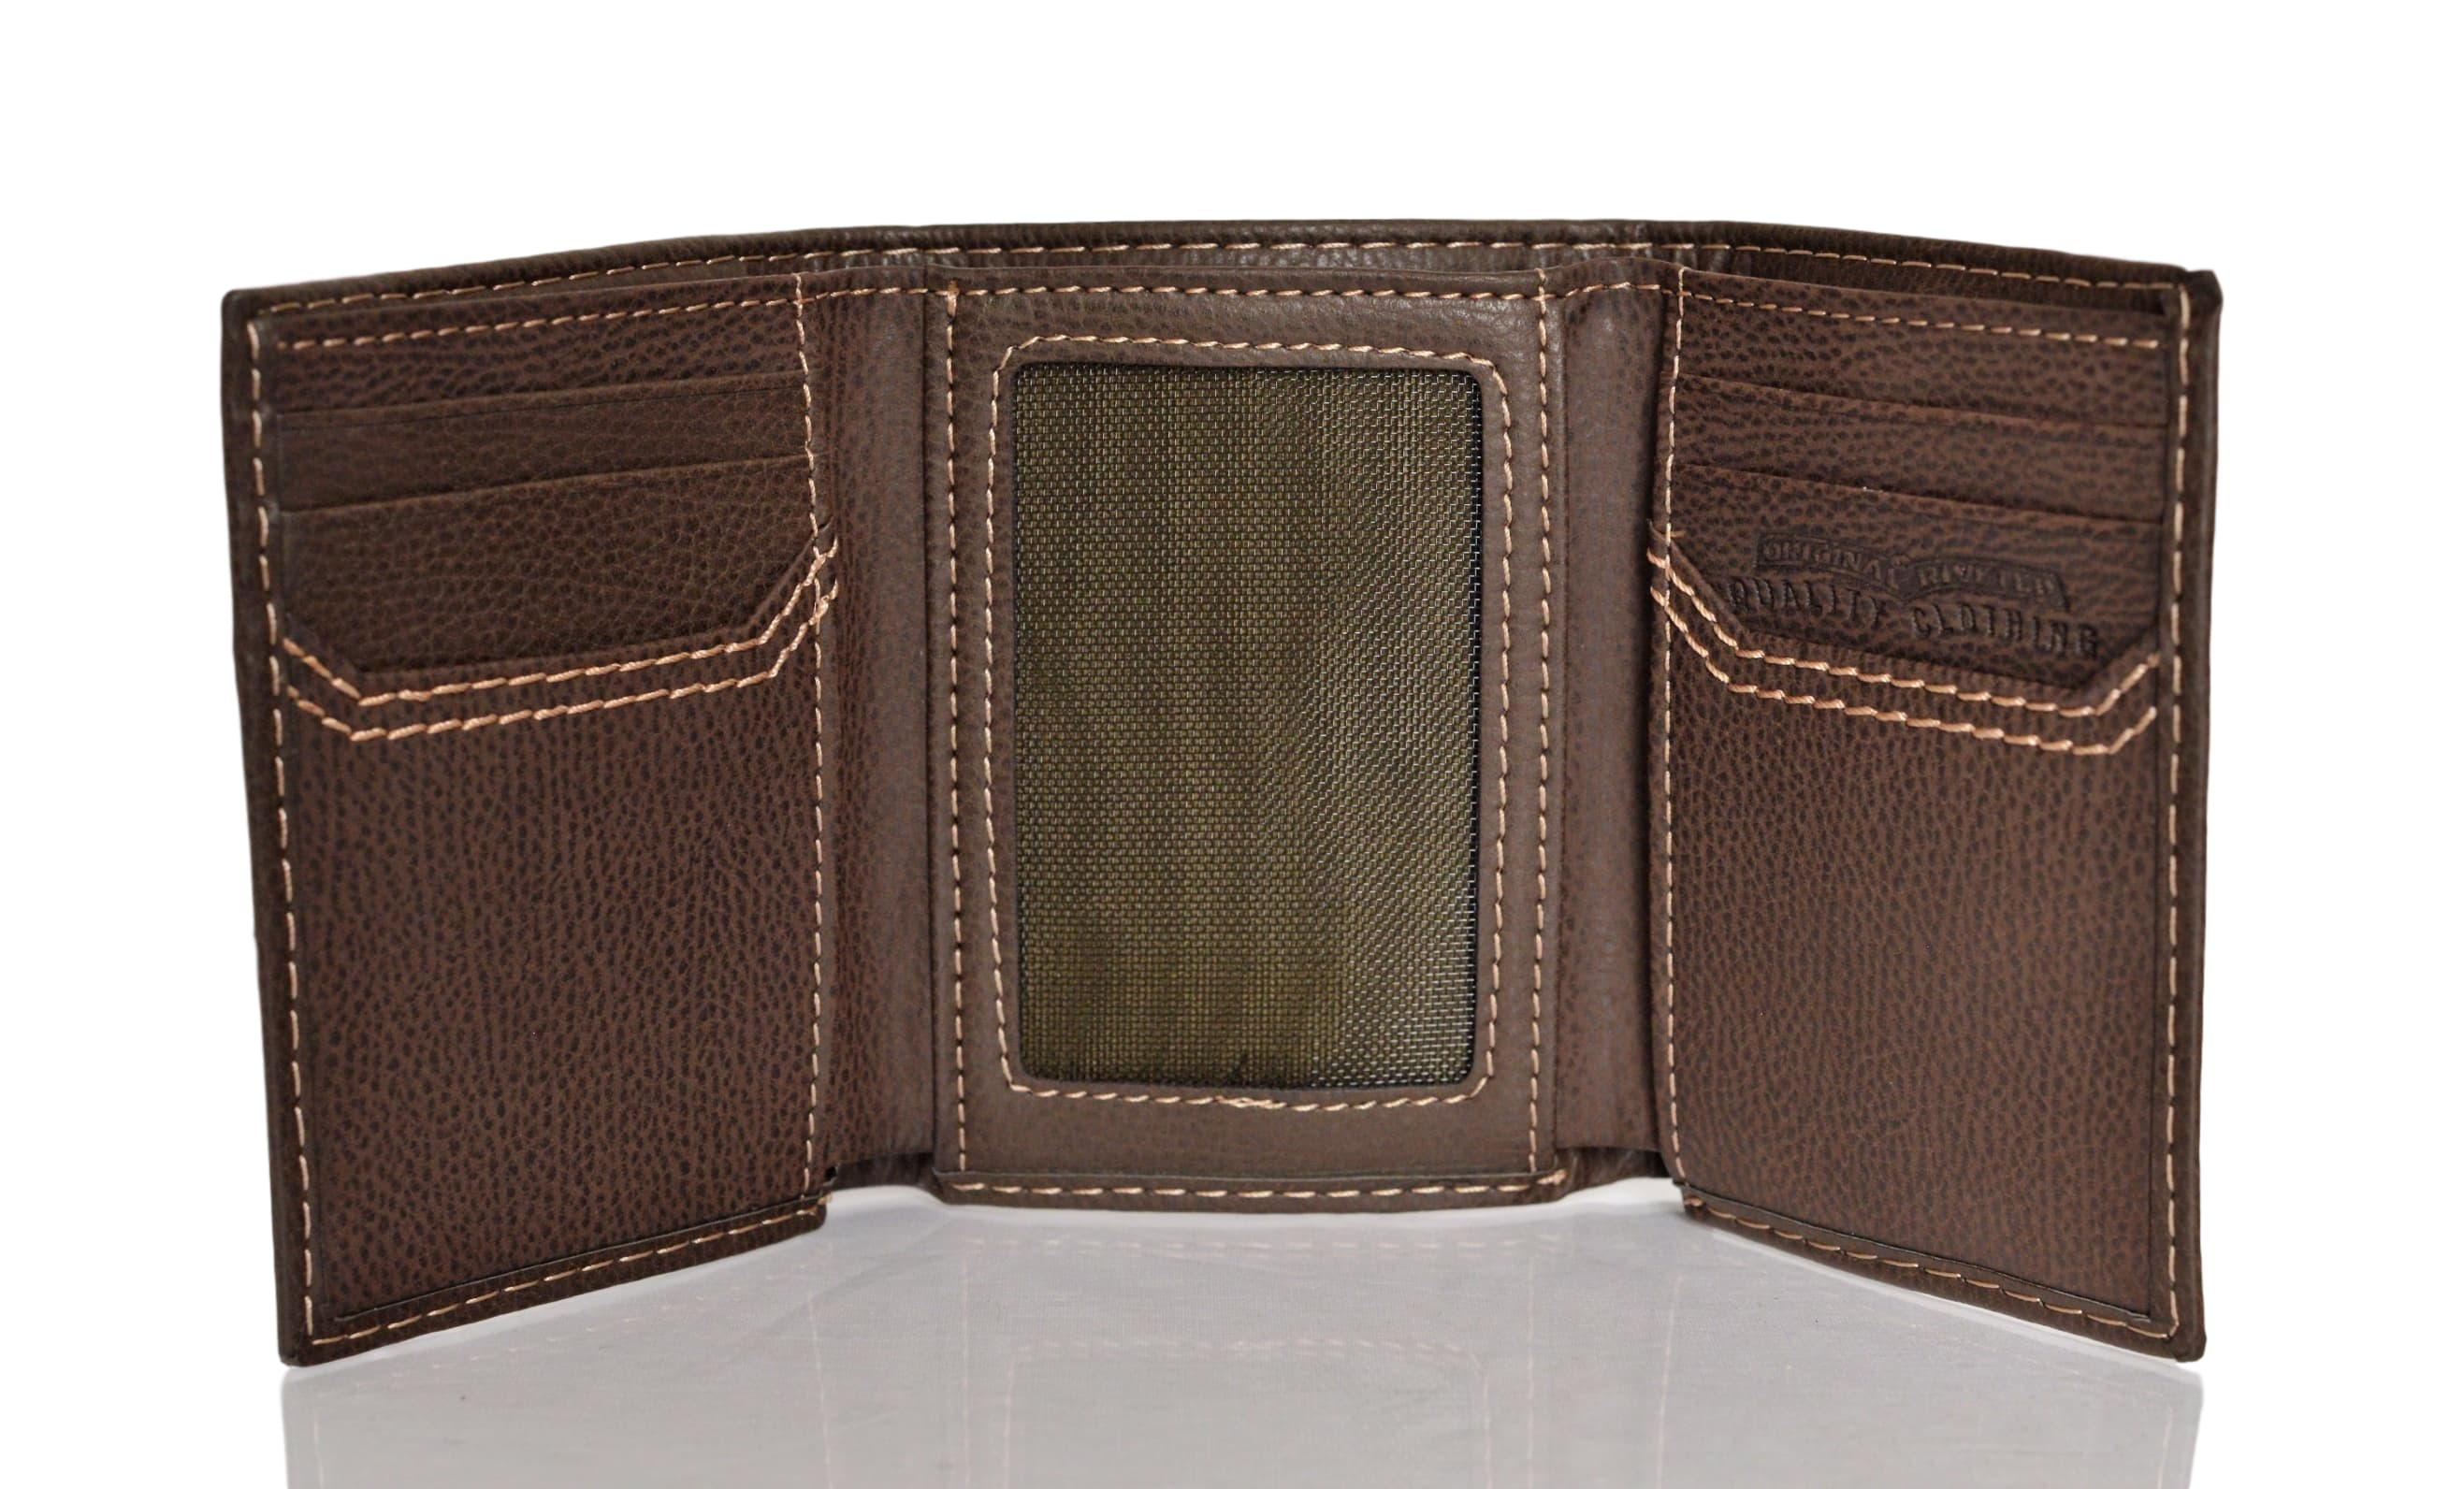 d092e3671655 Levi's Men's Trifold Wallet With Interior Zipper | Stanford Center ...